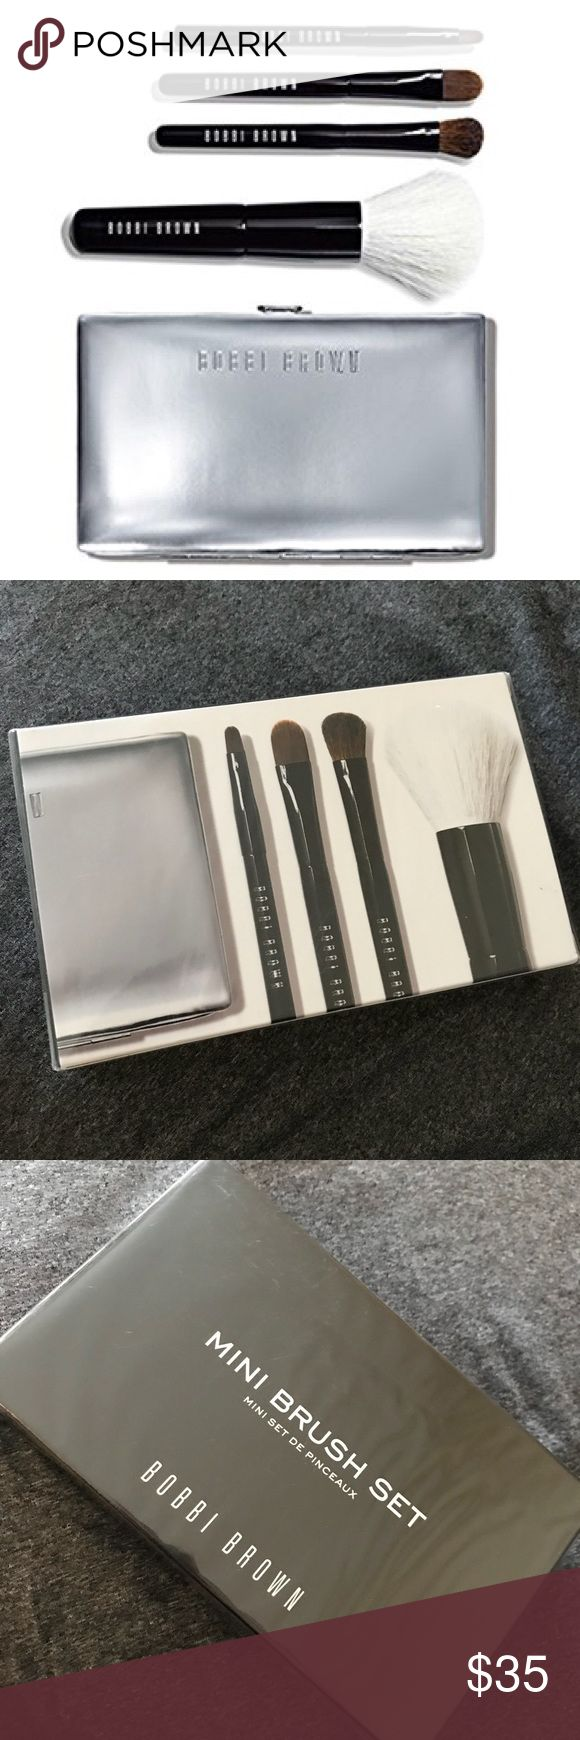 BNIB Bobbi brown mini brush set Authentic and brand new in box! Free shipping on bundles of 3 or more items 🤗✨ Sephora Makeup Brushes & Tools